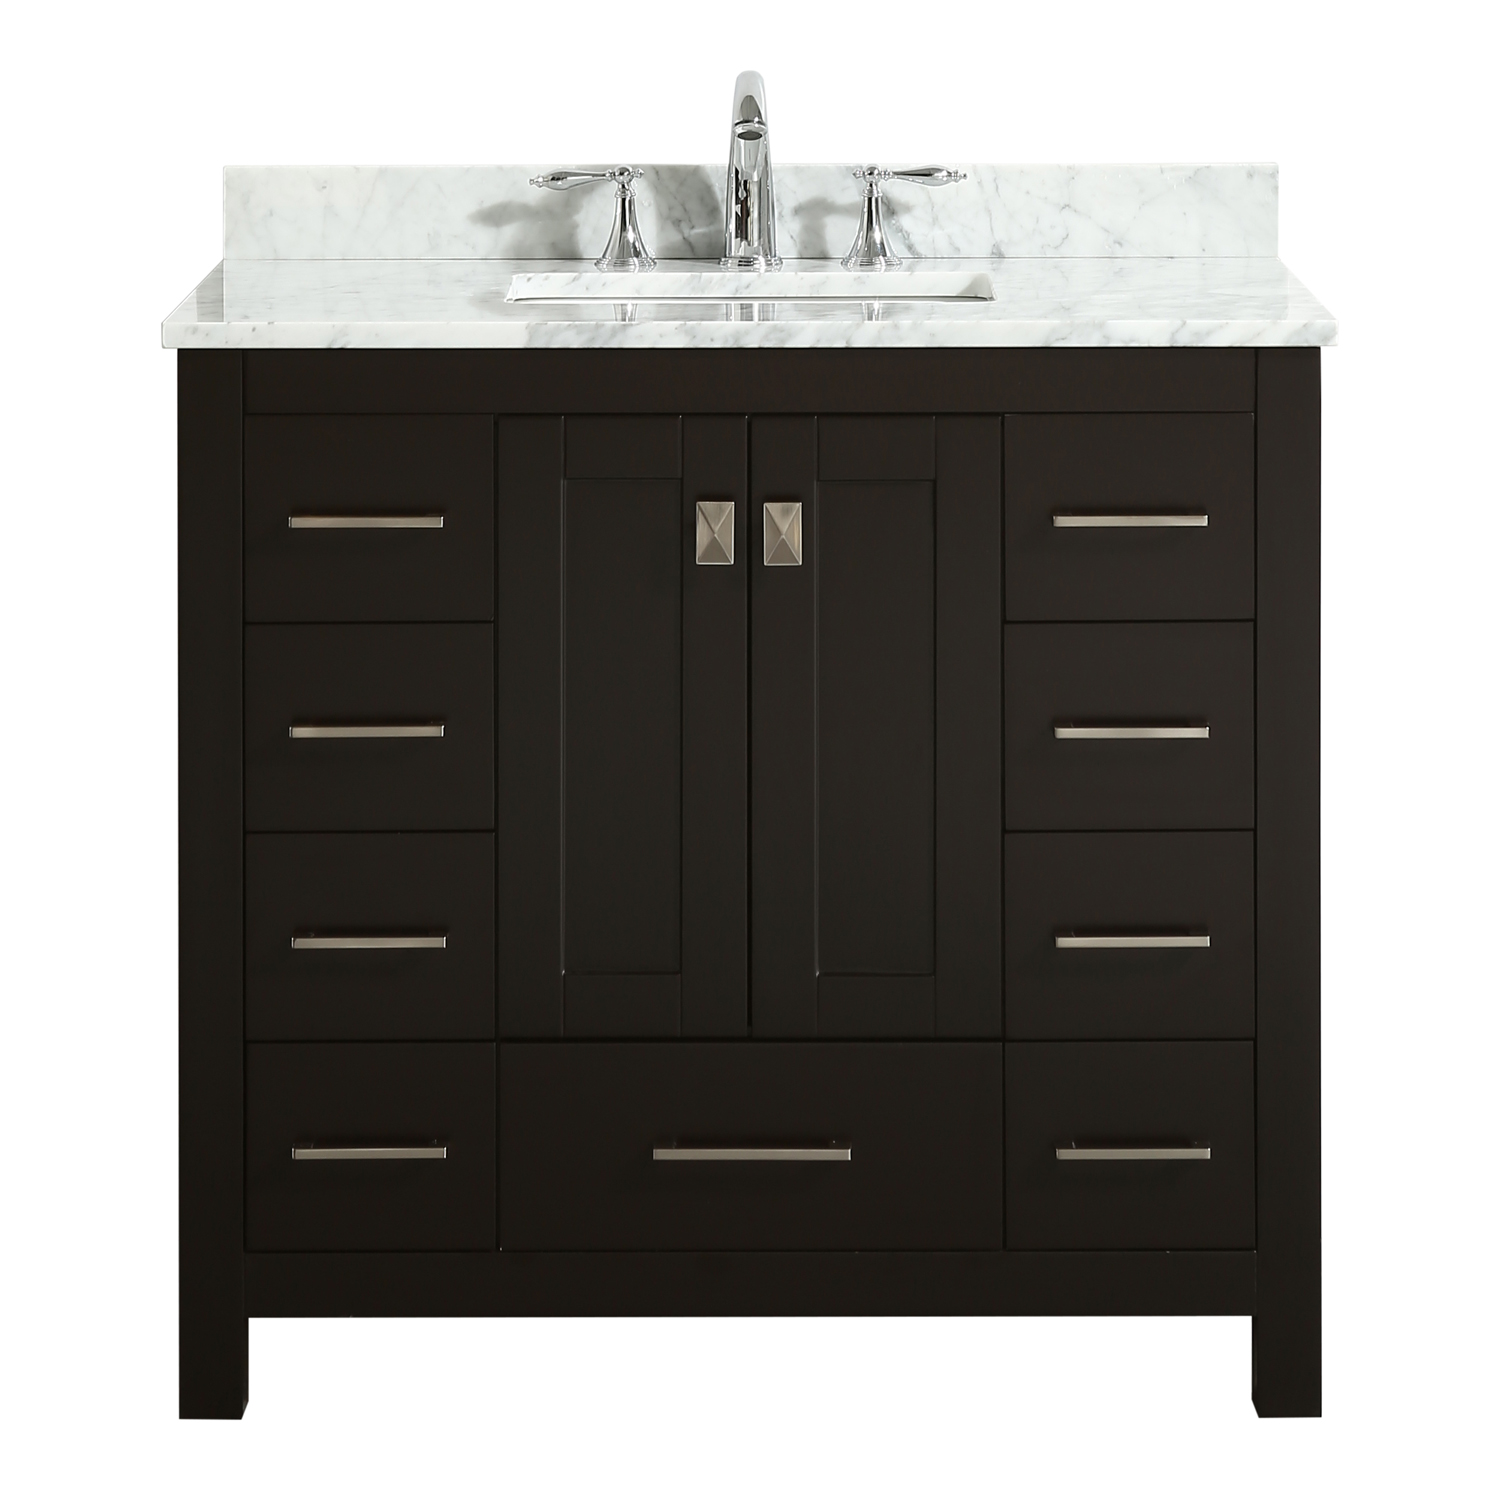 EVVN411 36ES A Main - Eviva Hampton 36 in. Transitional Espresso Bathroom Vanity with White Carrara Countertop and White Undermount  Porcelain Sink